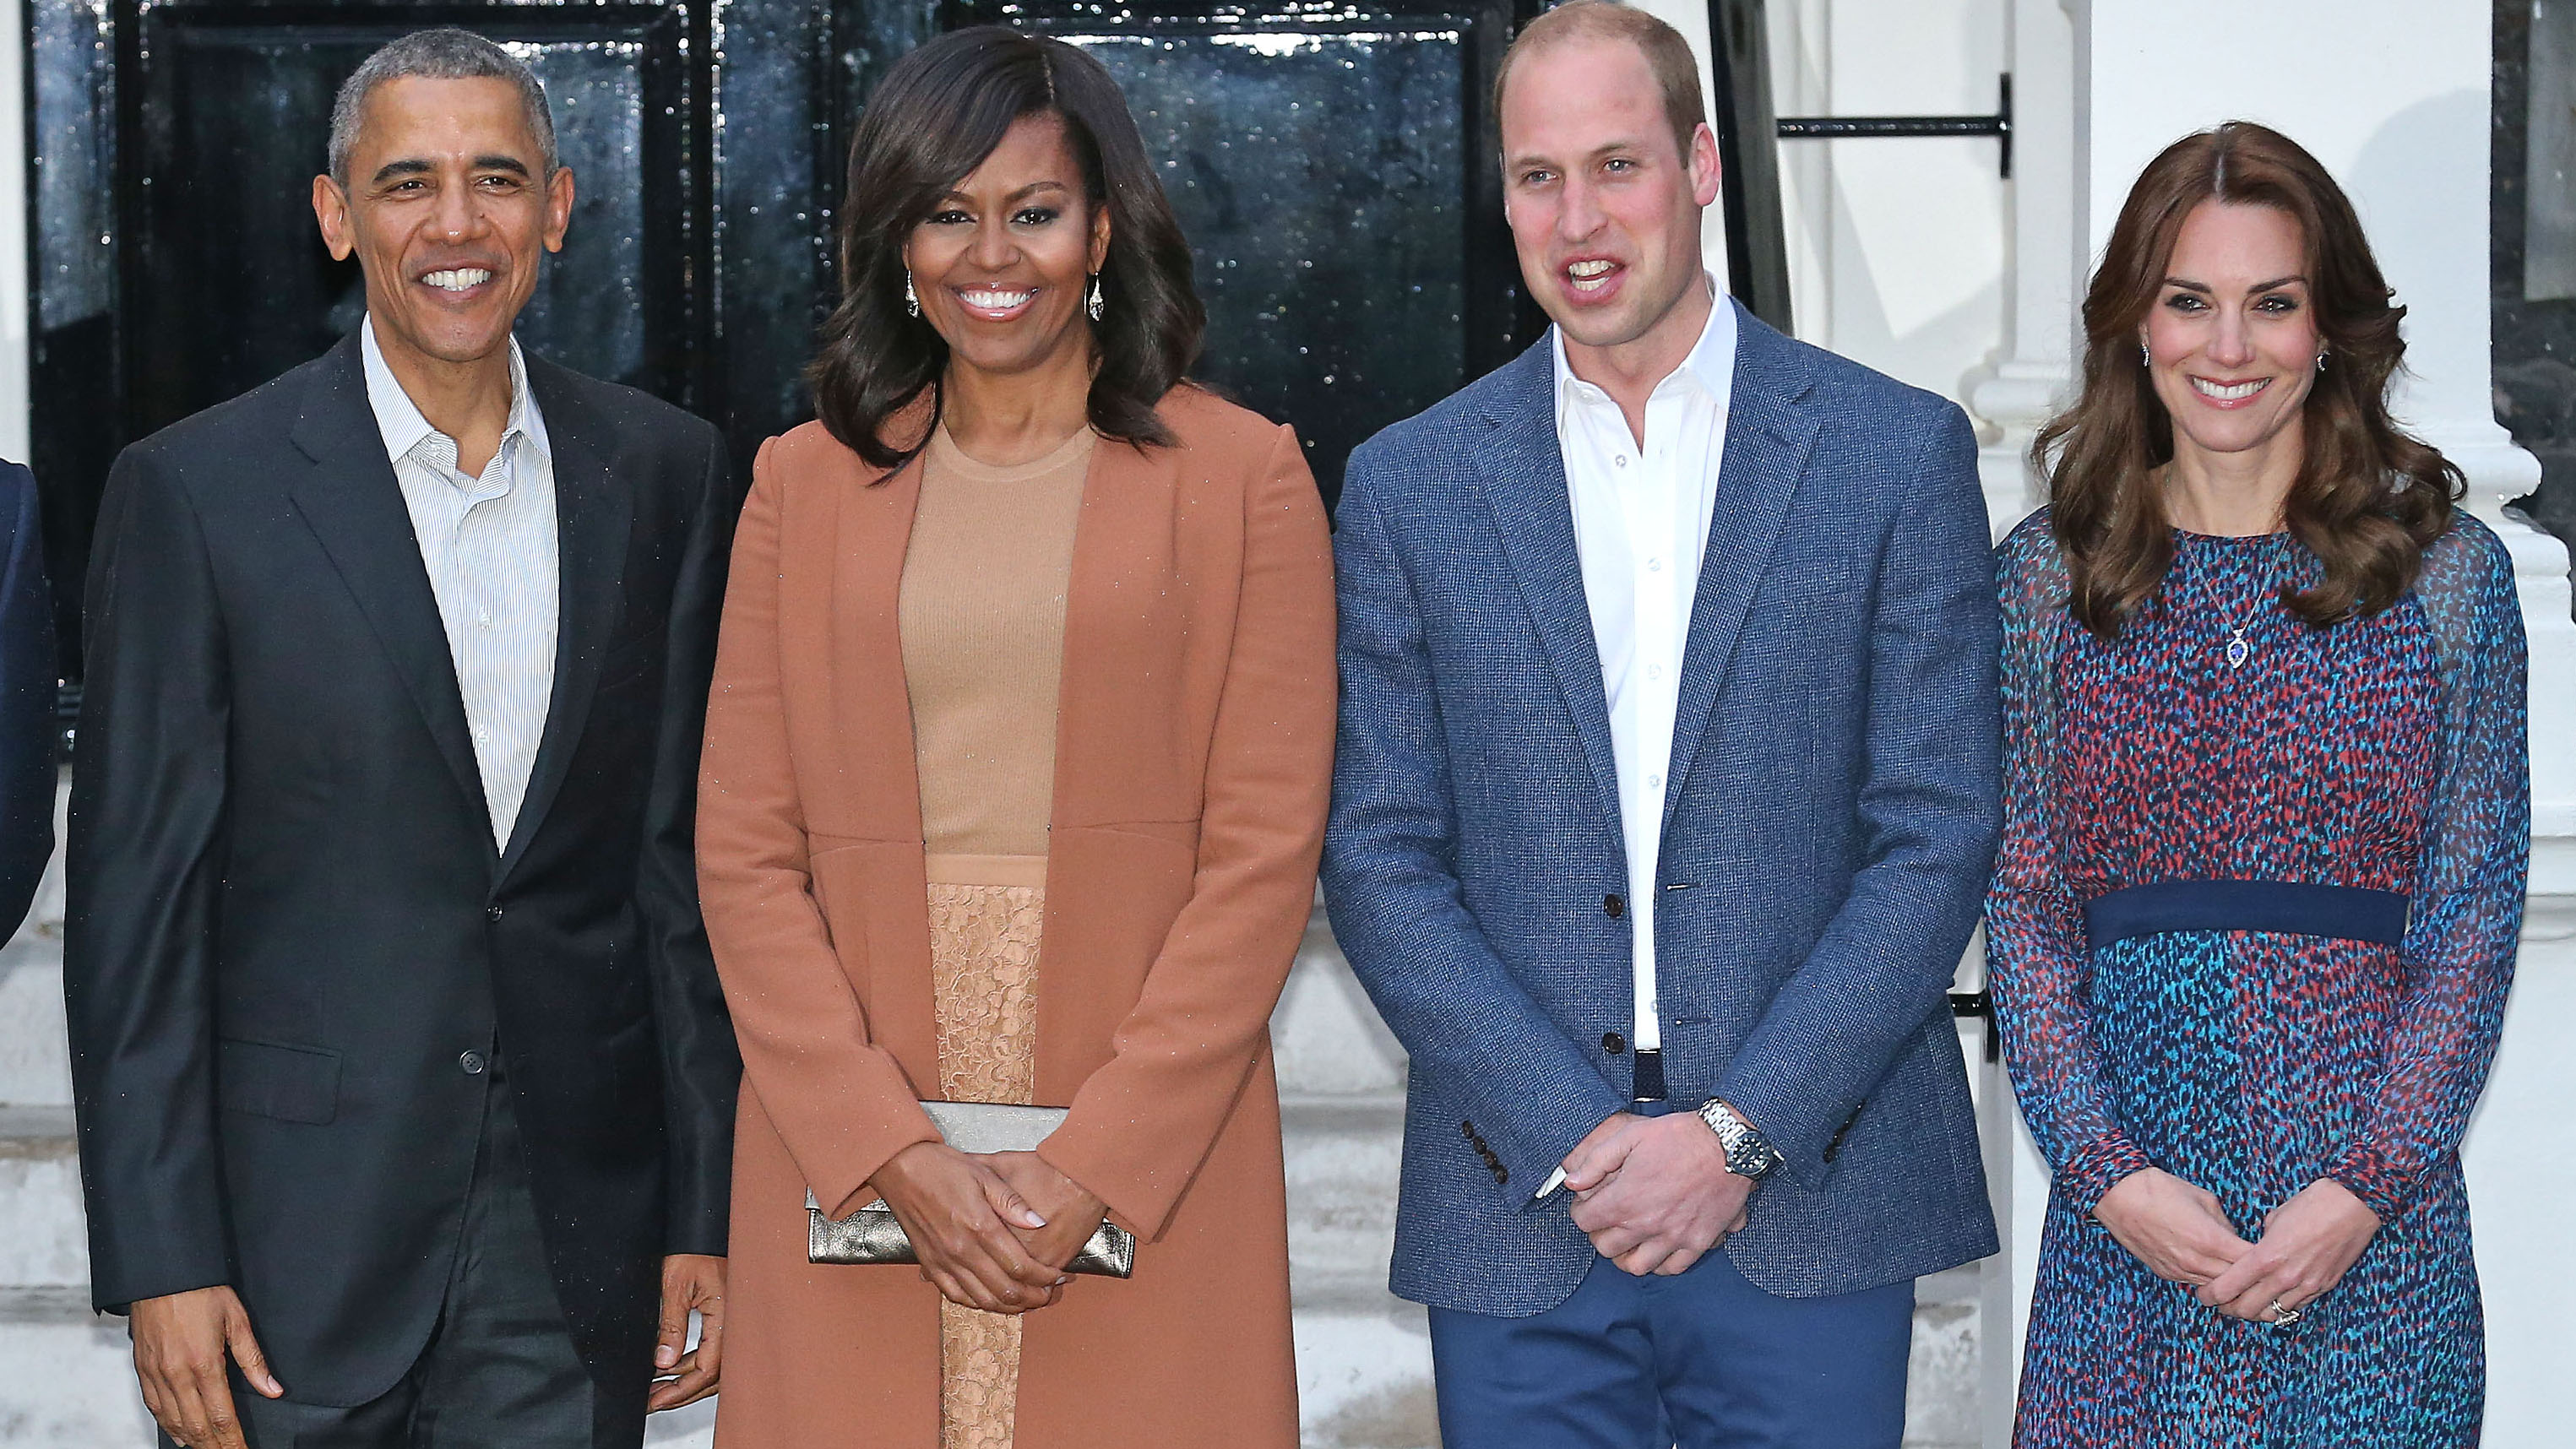 Were The Obamas Invited To The Royal Wedding.Michelle Obama Congratulates Kate Middleton And Prince William On